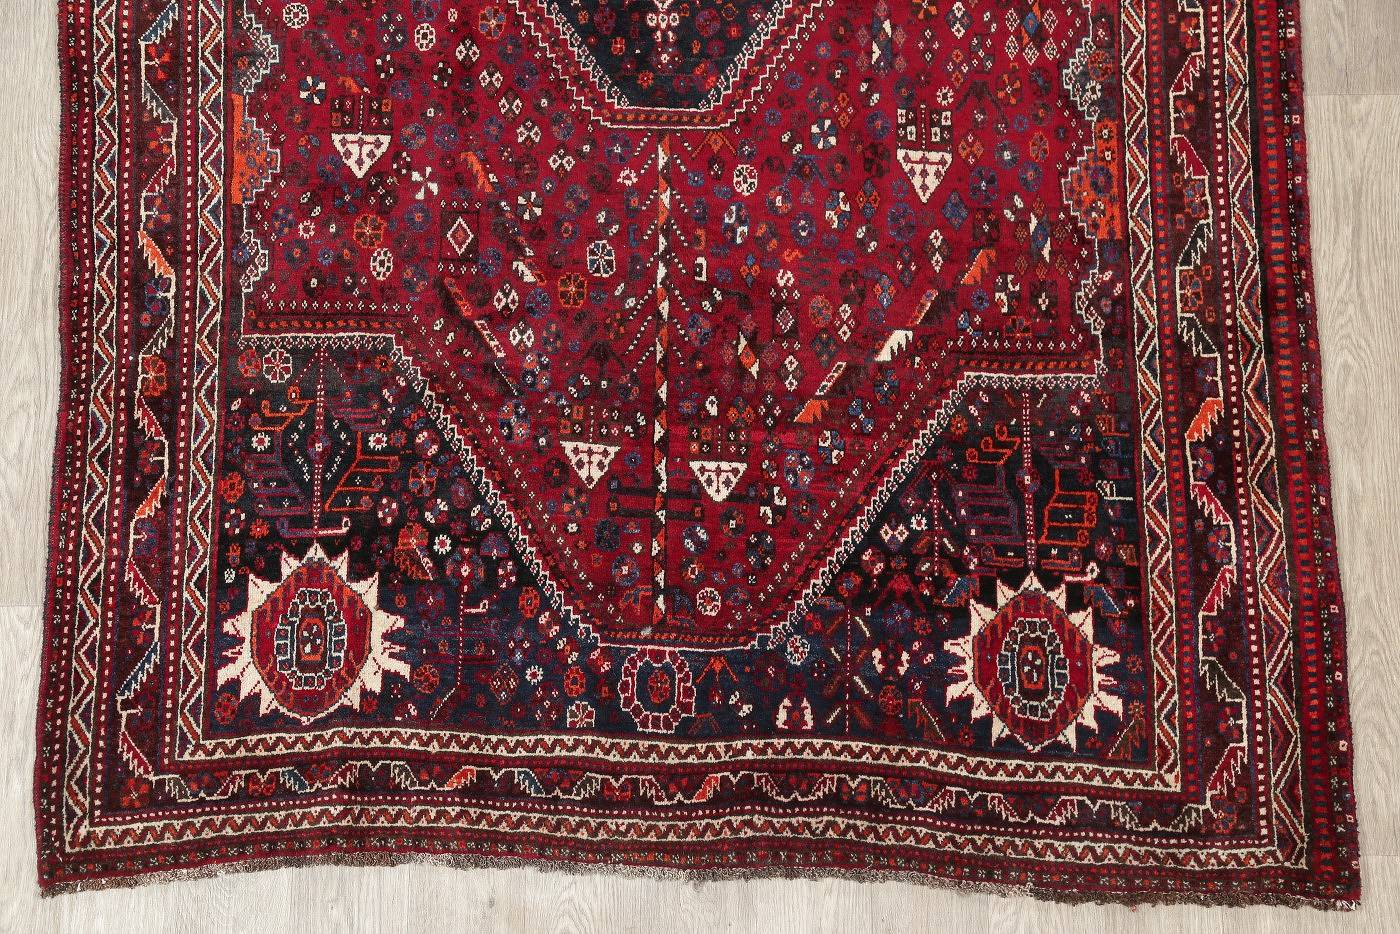 Antique Red Tribal Geometric Qashqai Persian Hand-Knotted 5x8 Wool Area Rug image 5